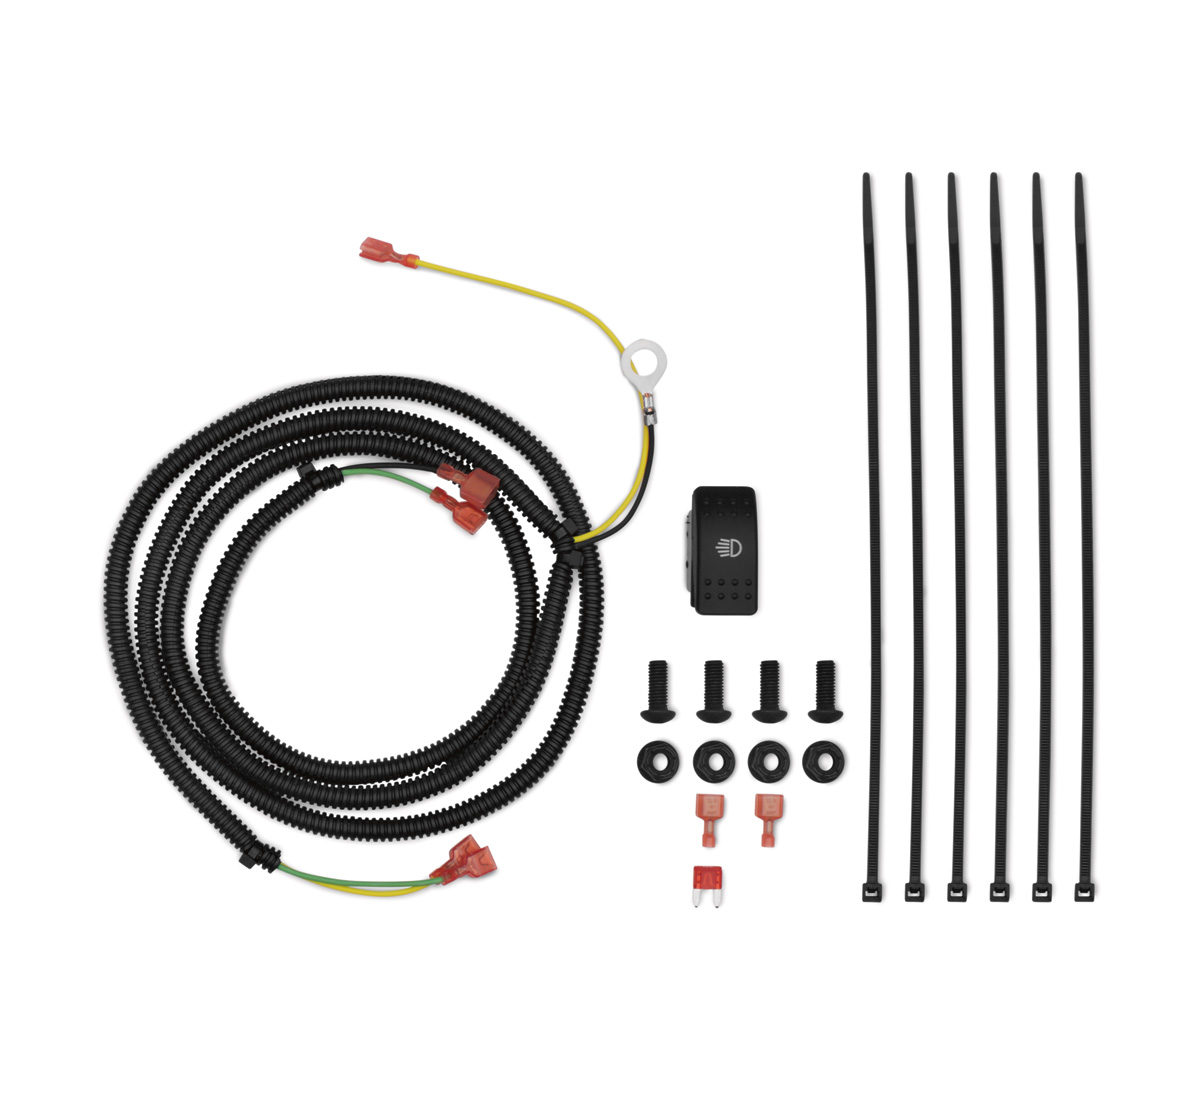 side x side led lightbar harness kit Mule Pro FX Wiring-Diagram led lightbar harness kit